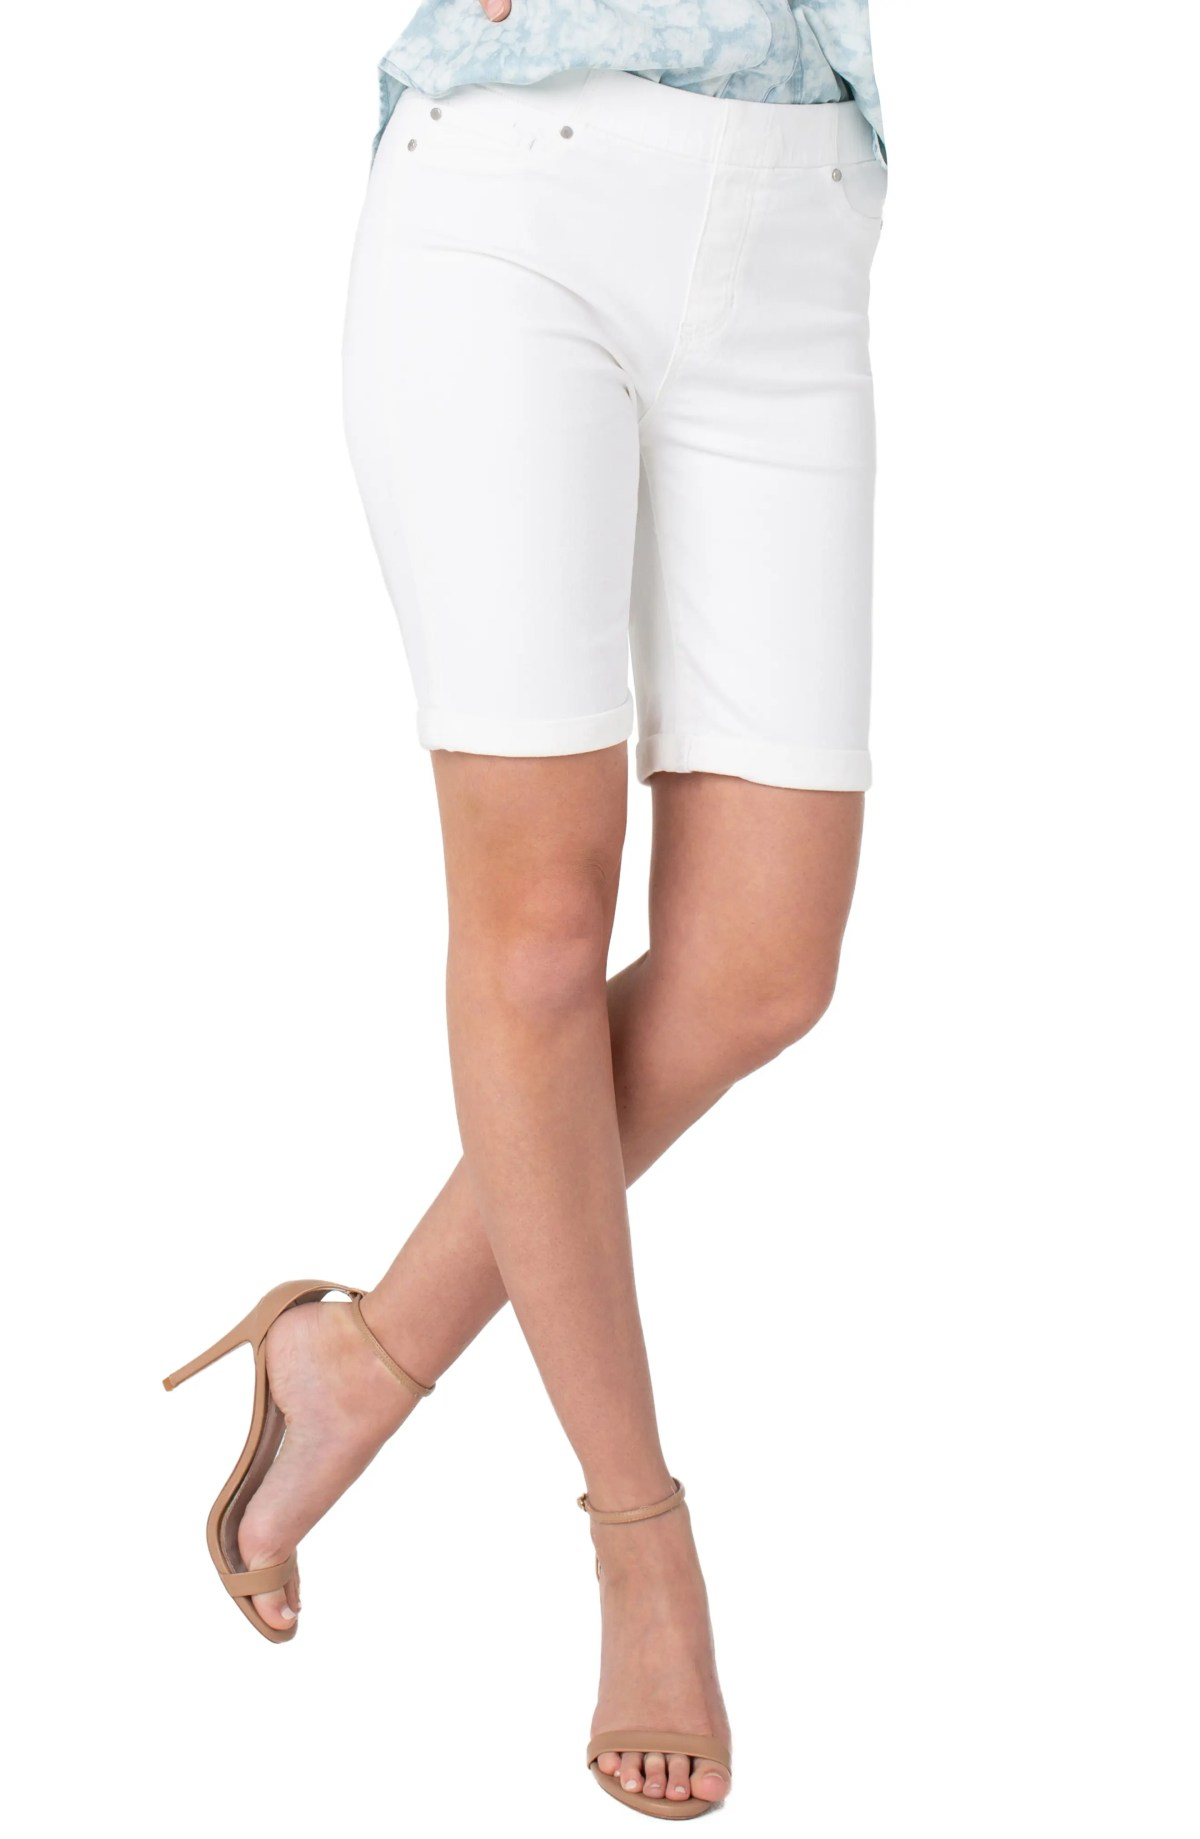 LIVERPOOL Chloe Pull-On Bermuda Shorts, Main, color, BRIGHT WHITE